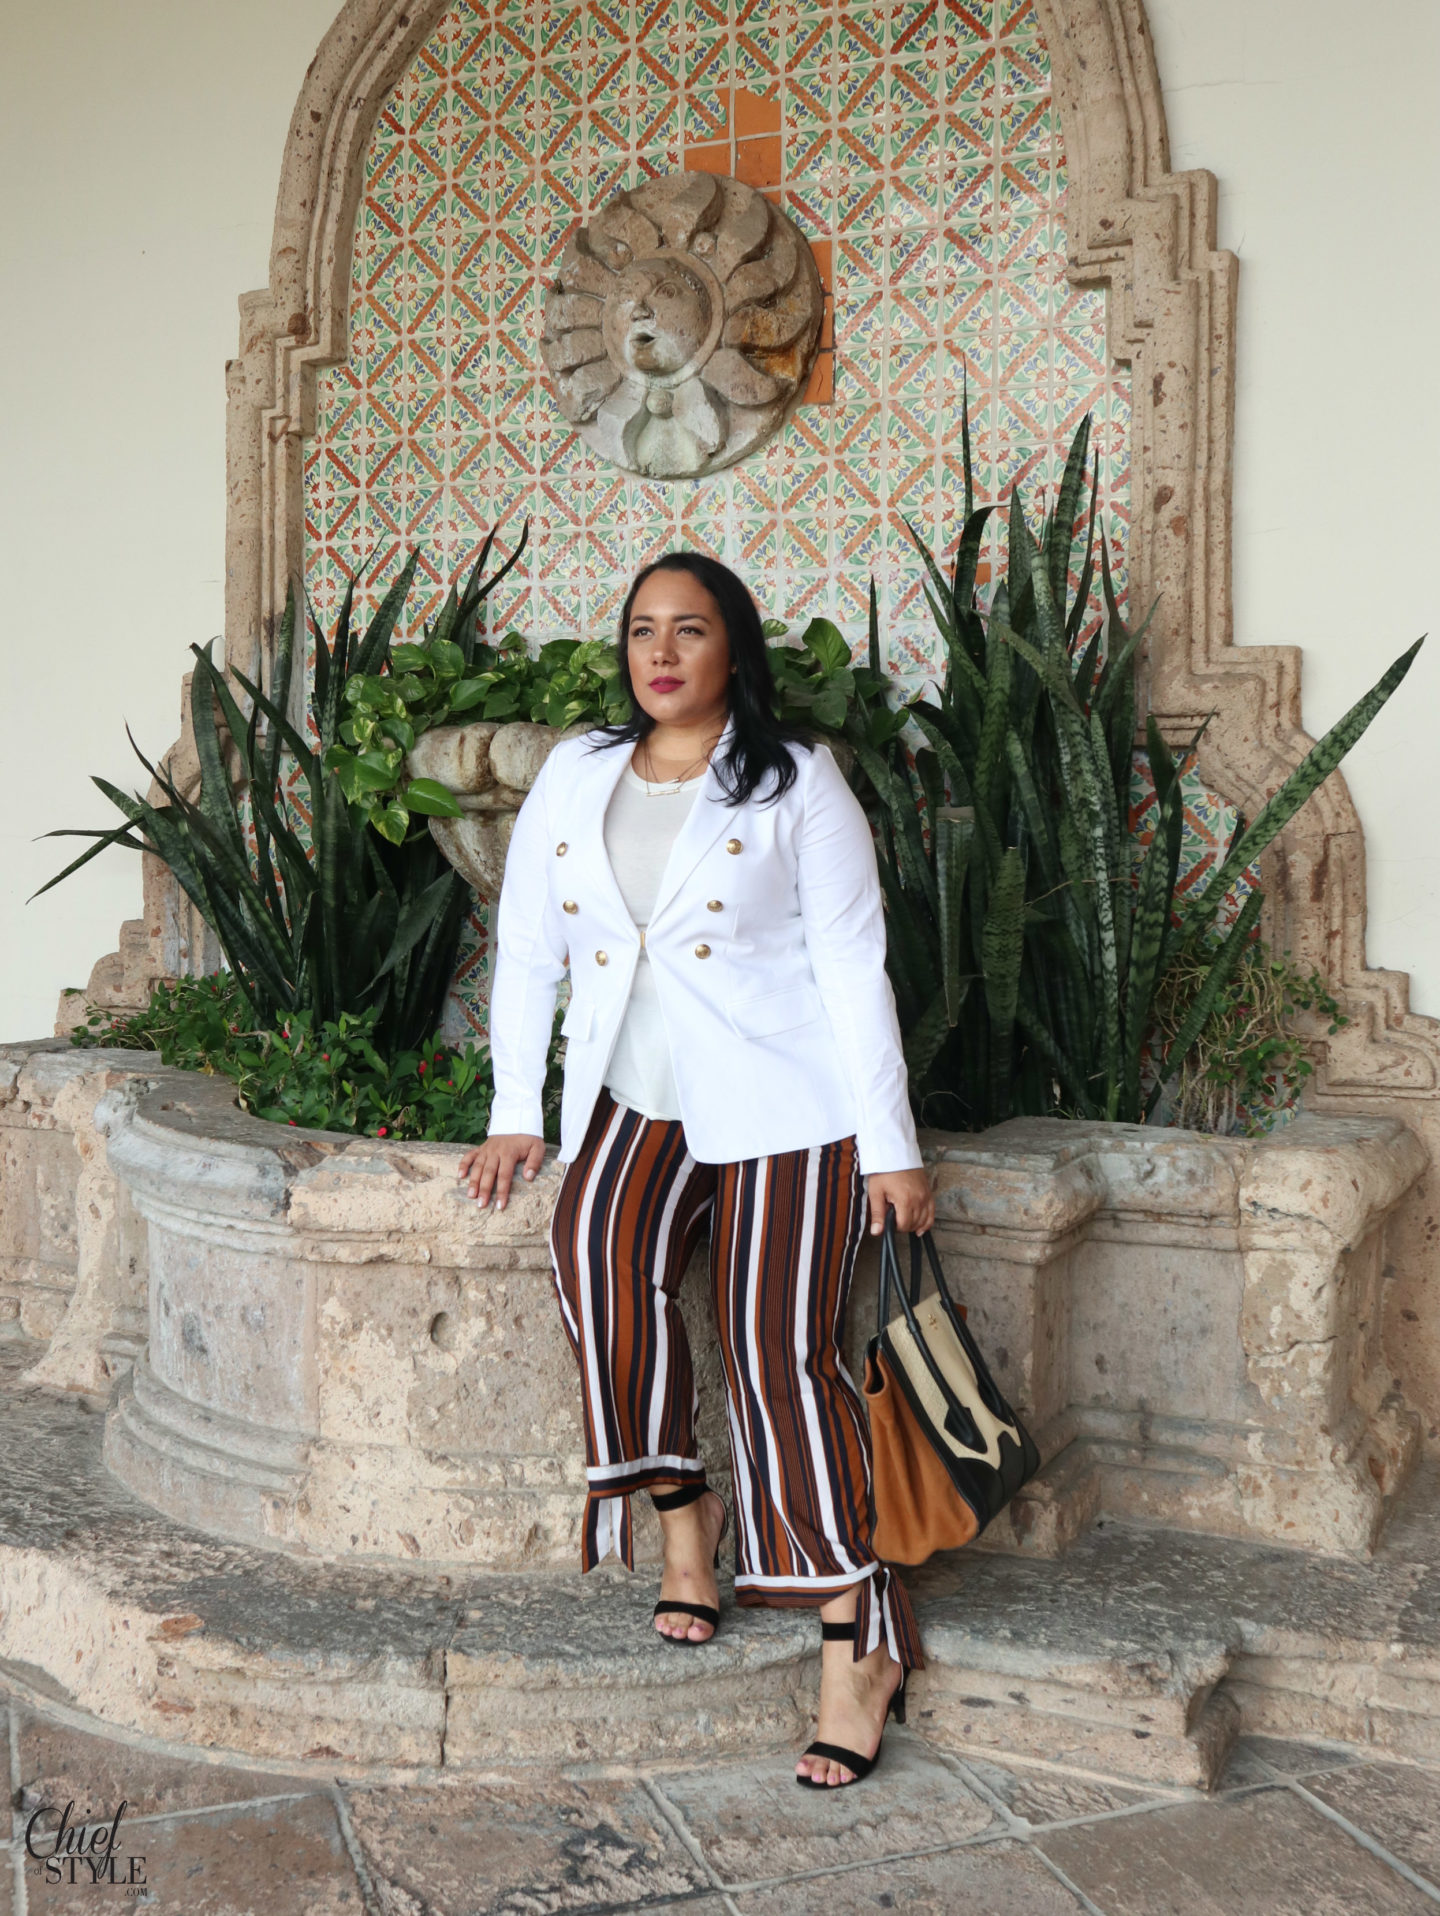 Amy Stretten Chief of Style in Palm Springs, California wearing plus size clothing by Lane Bryant blazer and Fashion Nova Pants with a Pour La Victoire tote bag